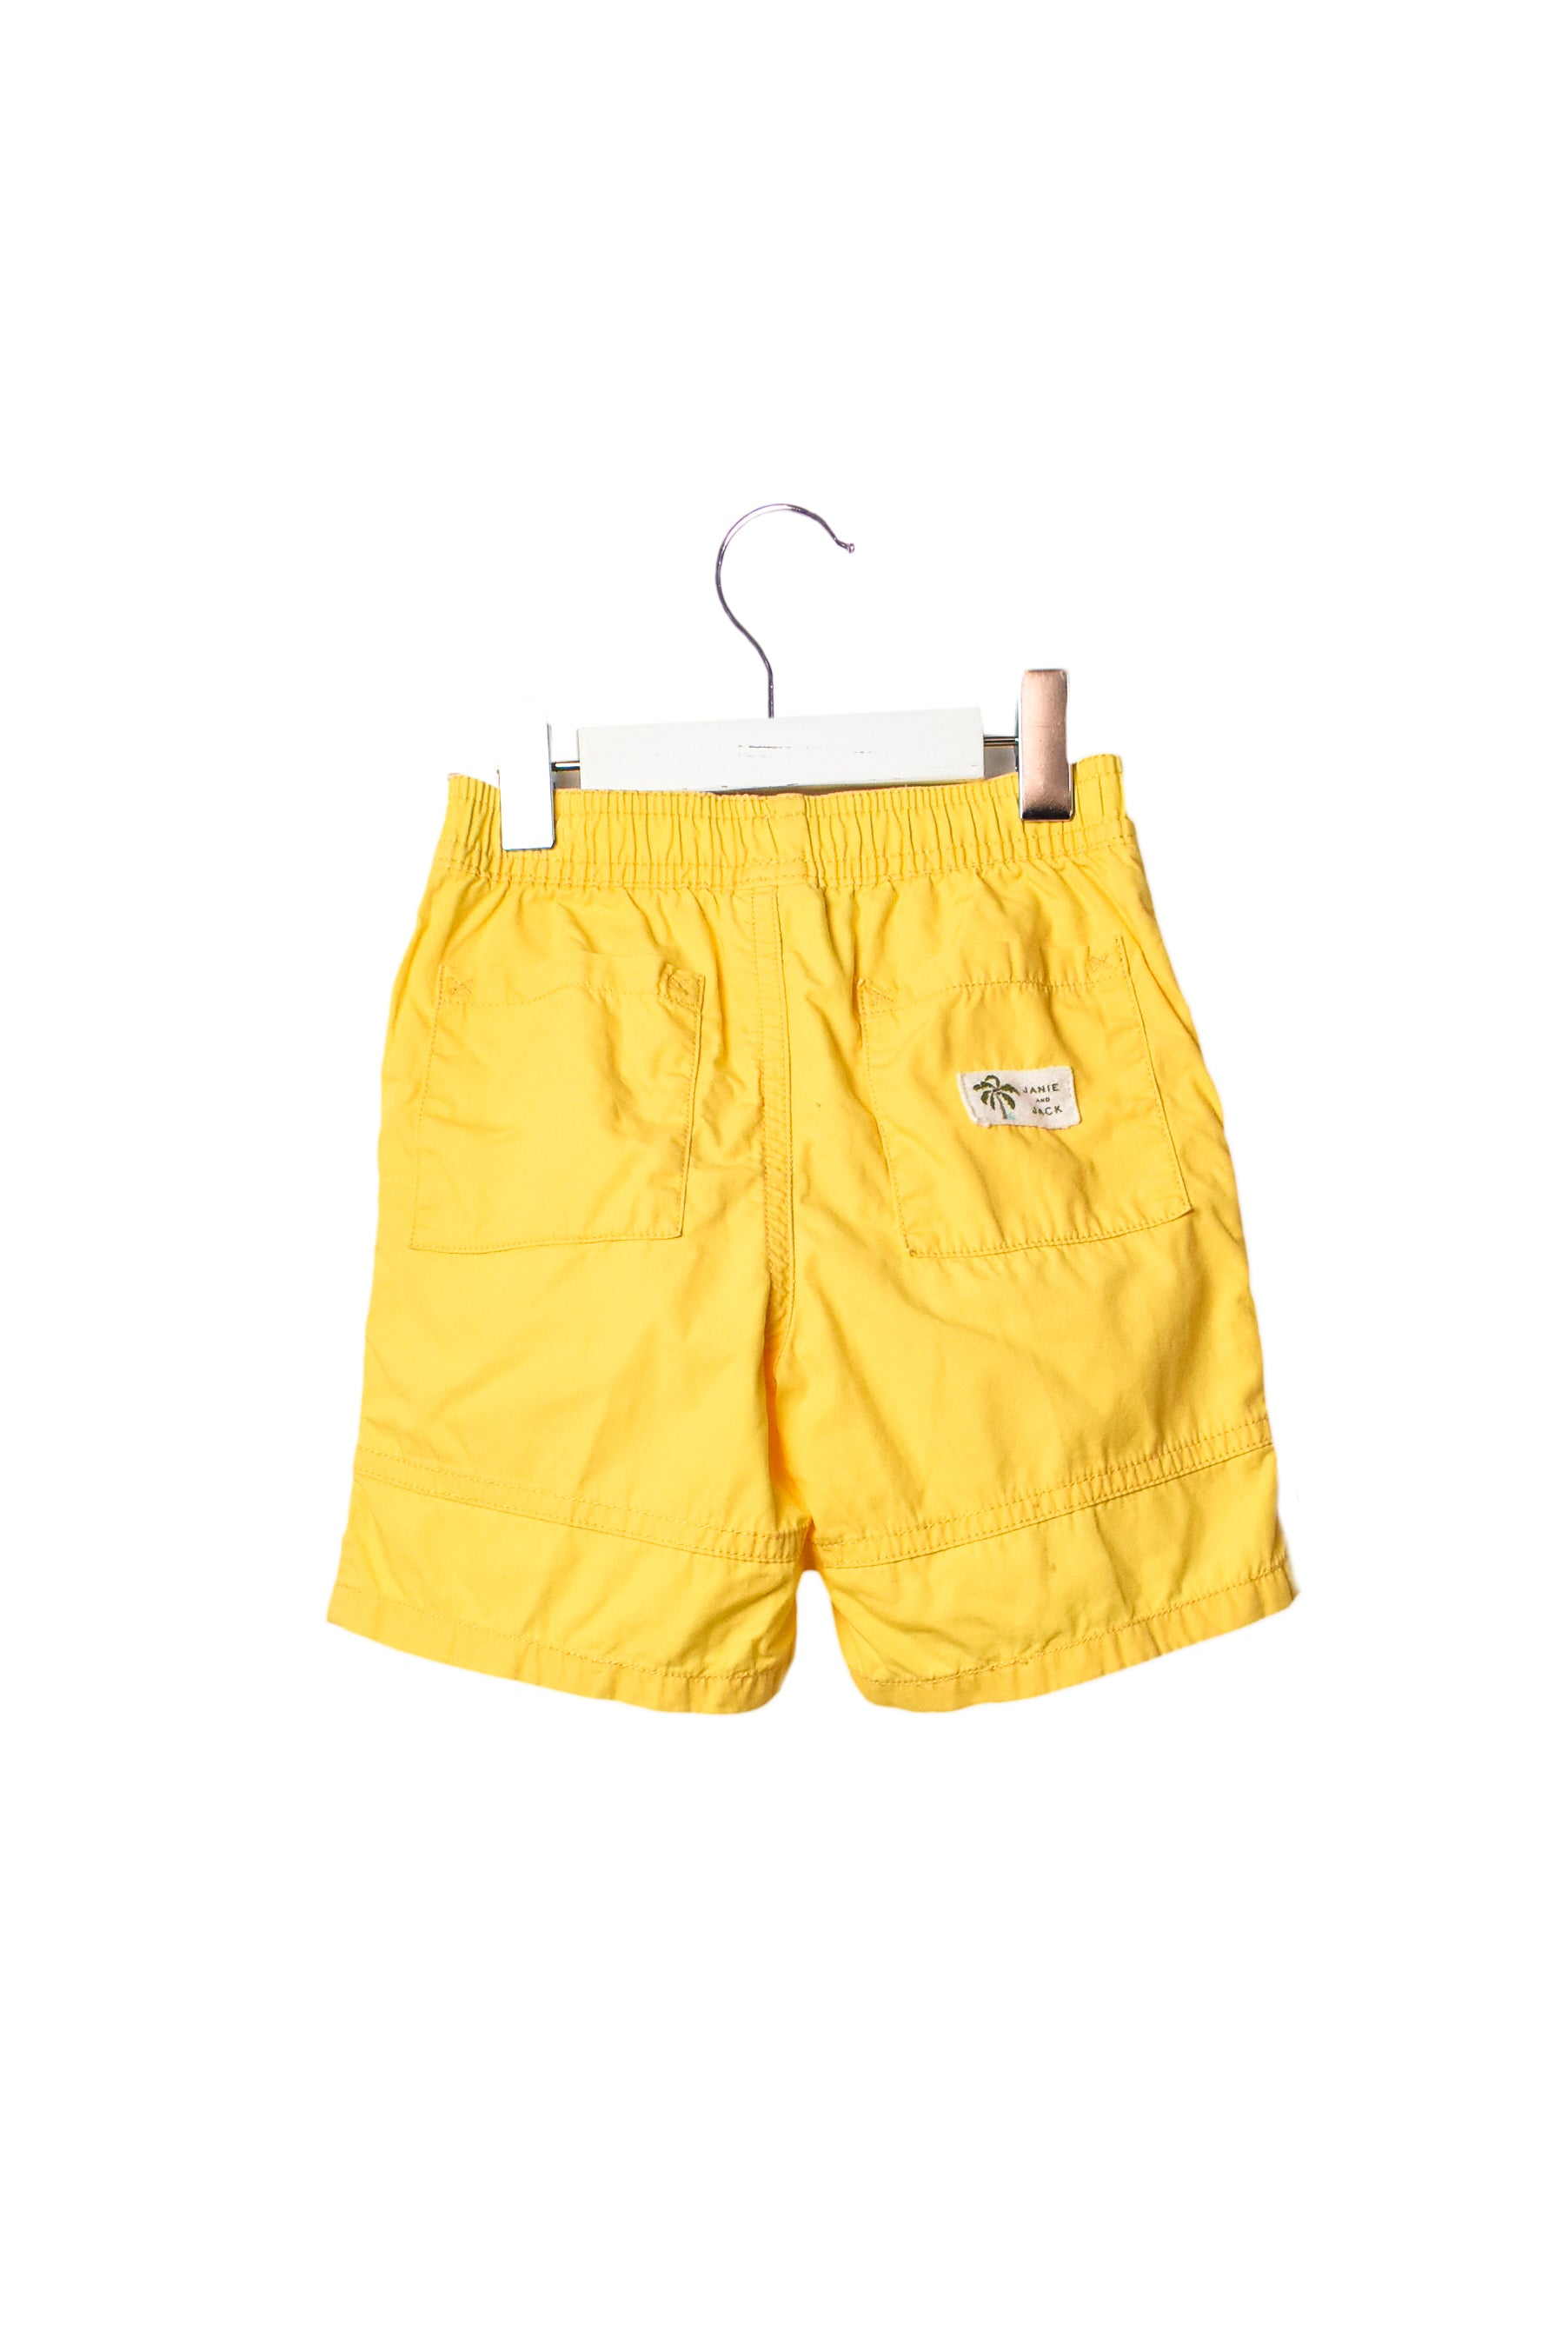 10007913 Janie & Jack Baby~ Shorts 12-18M at Retykle